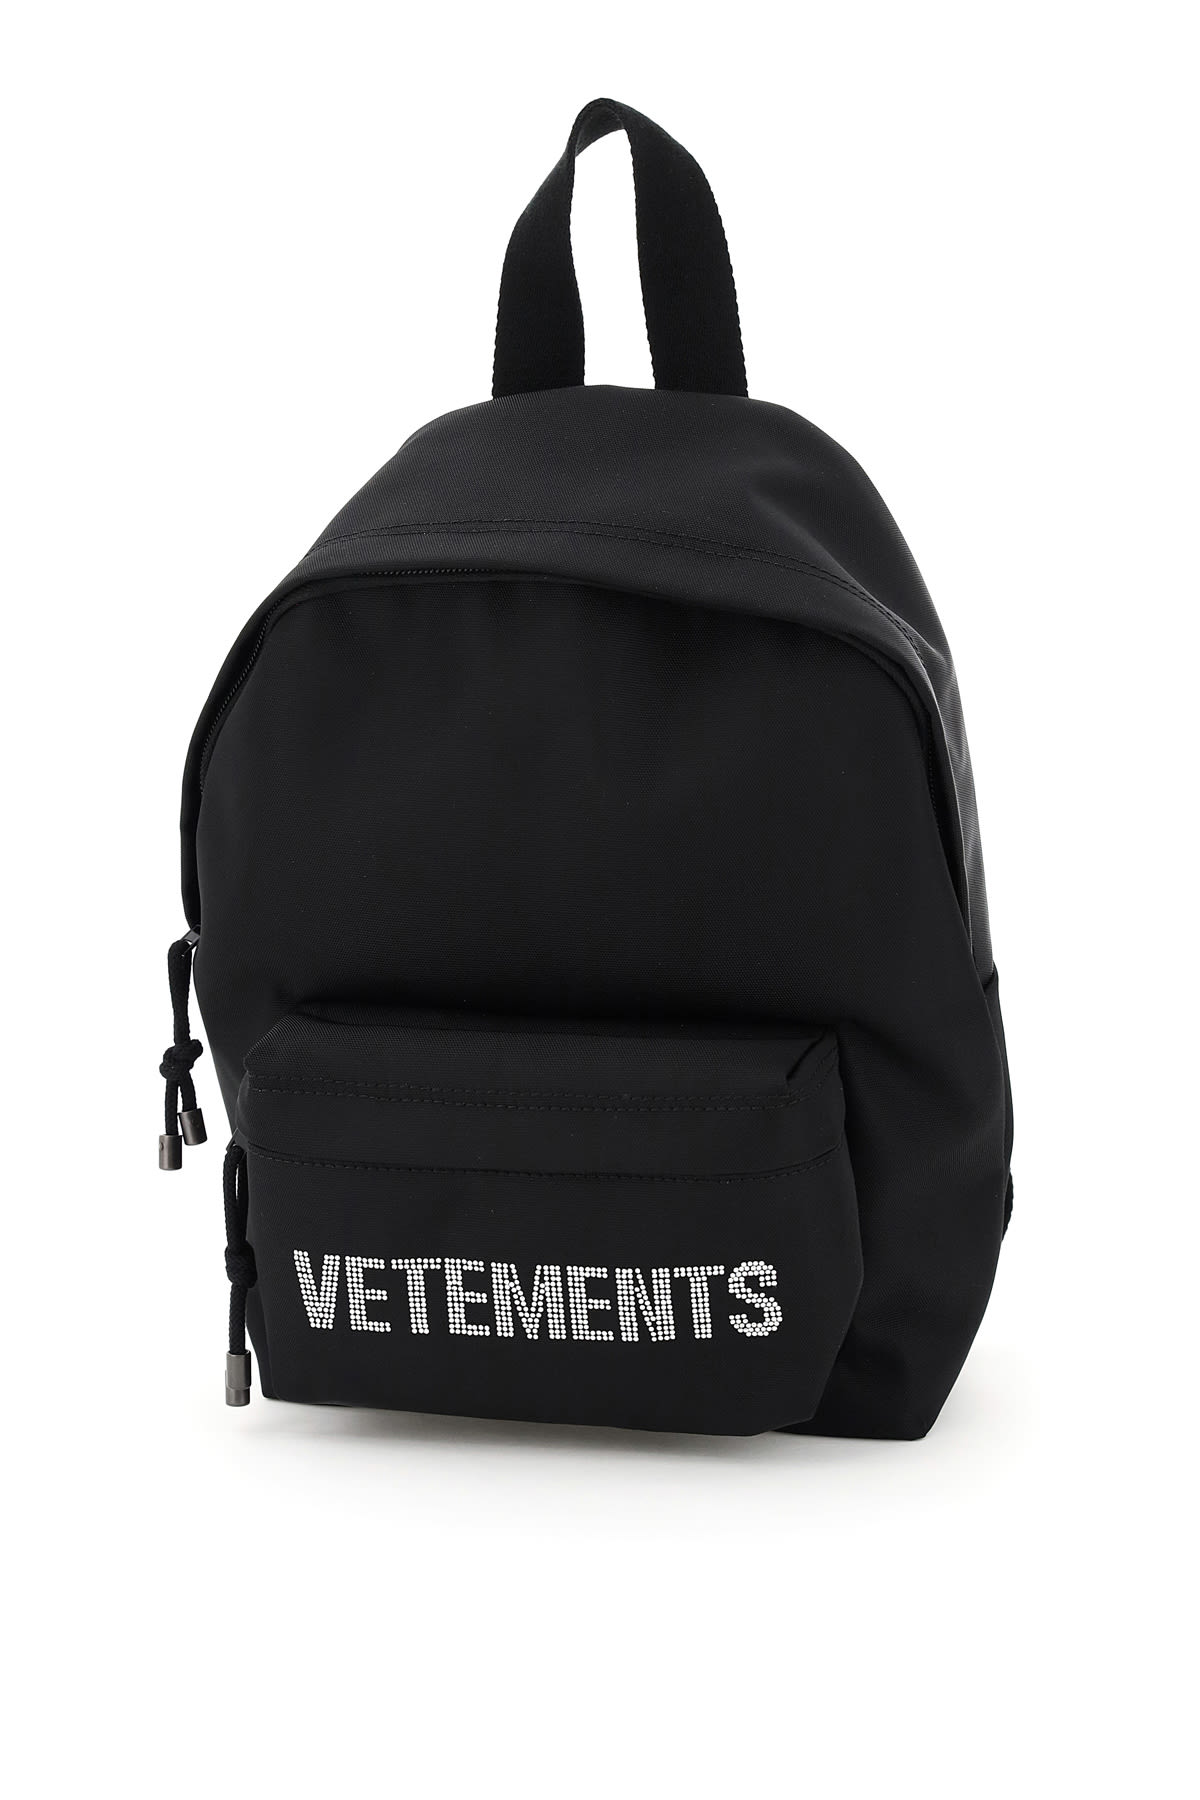 Vetements RHINESTONE LOGO SMALL BACKPACK